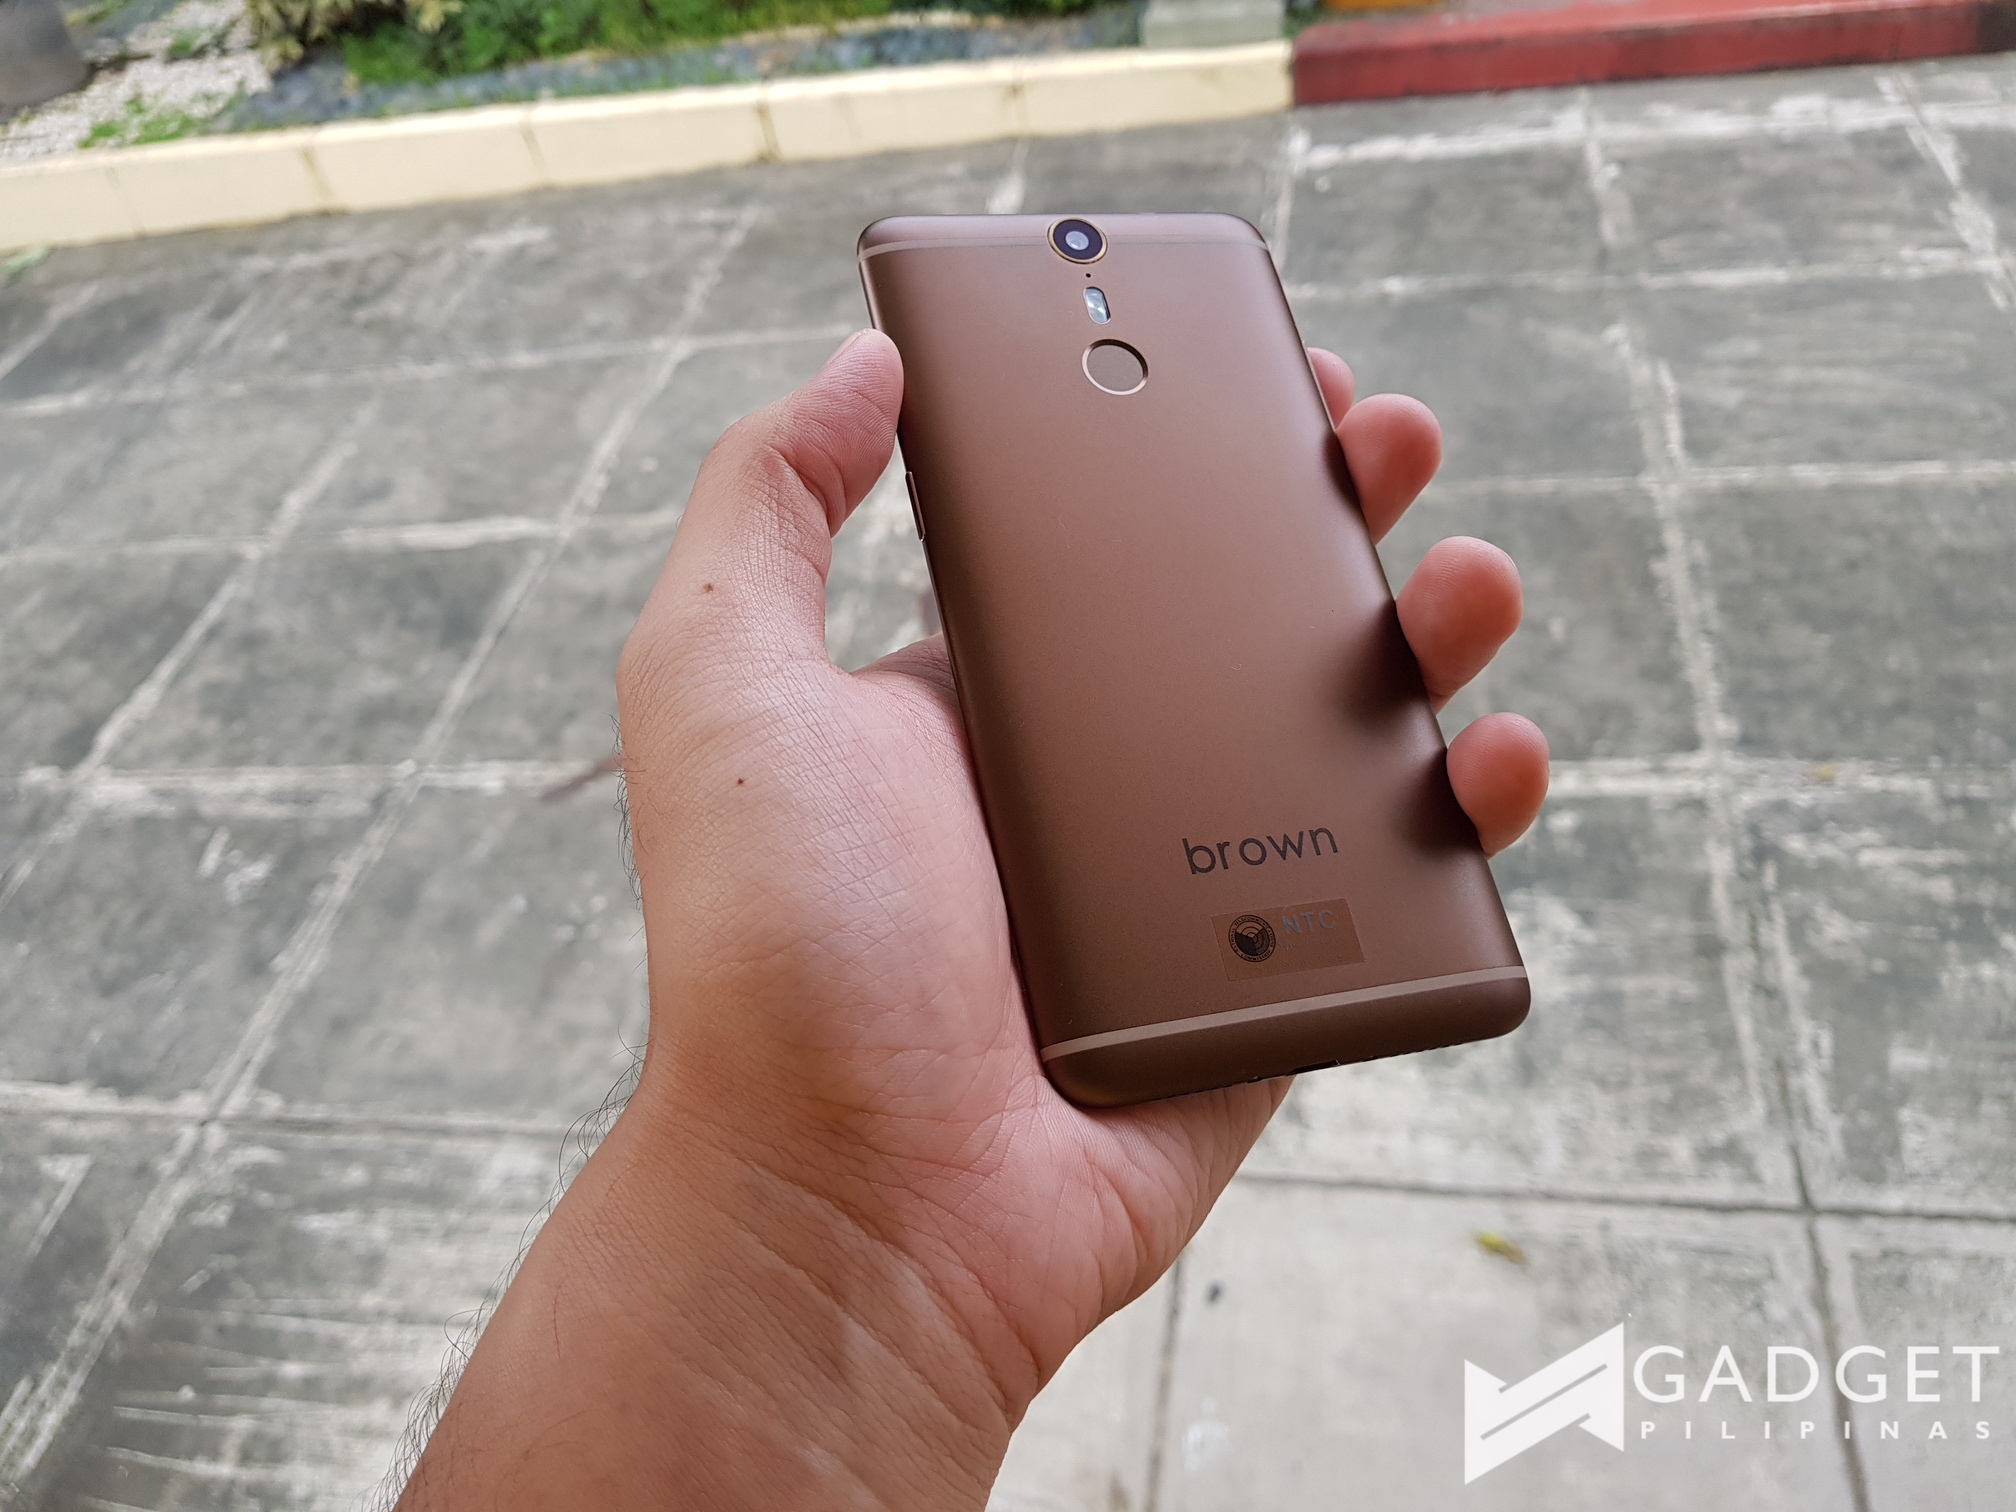 MyPhone Brown 2 Review